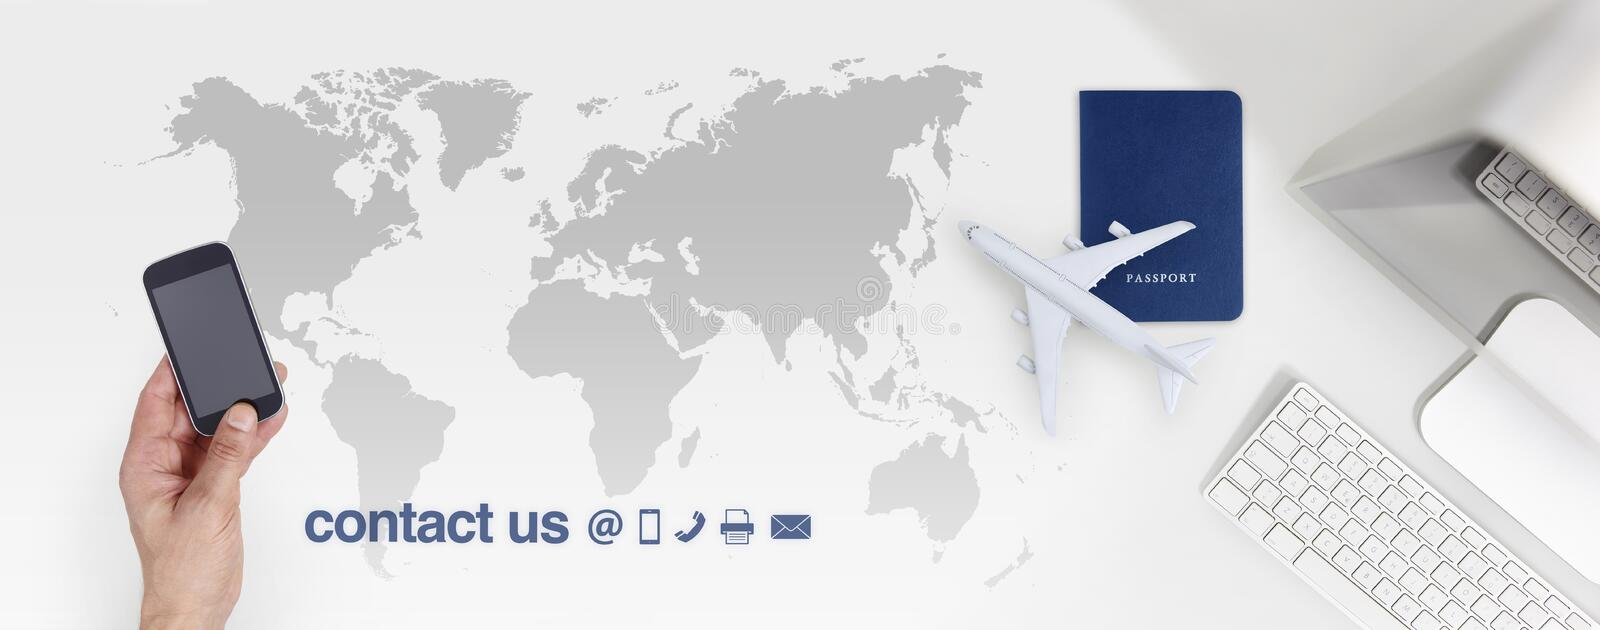 contact us and booking flight ticket air travel vacations concept, hands with smart phone on world map background stock image